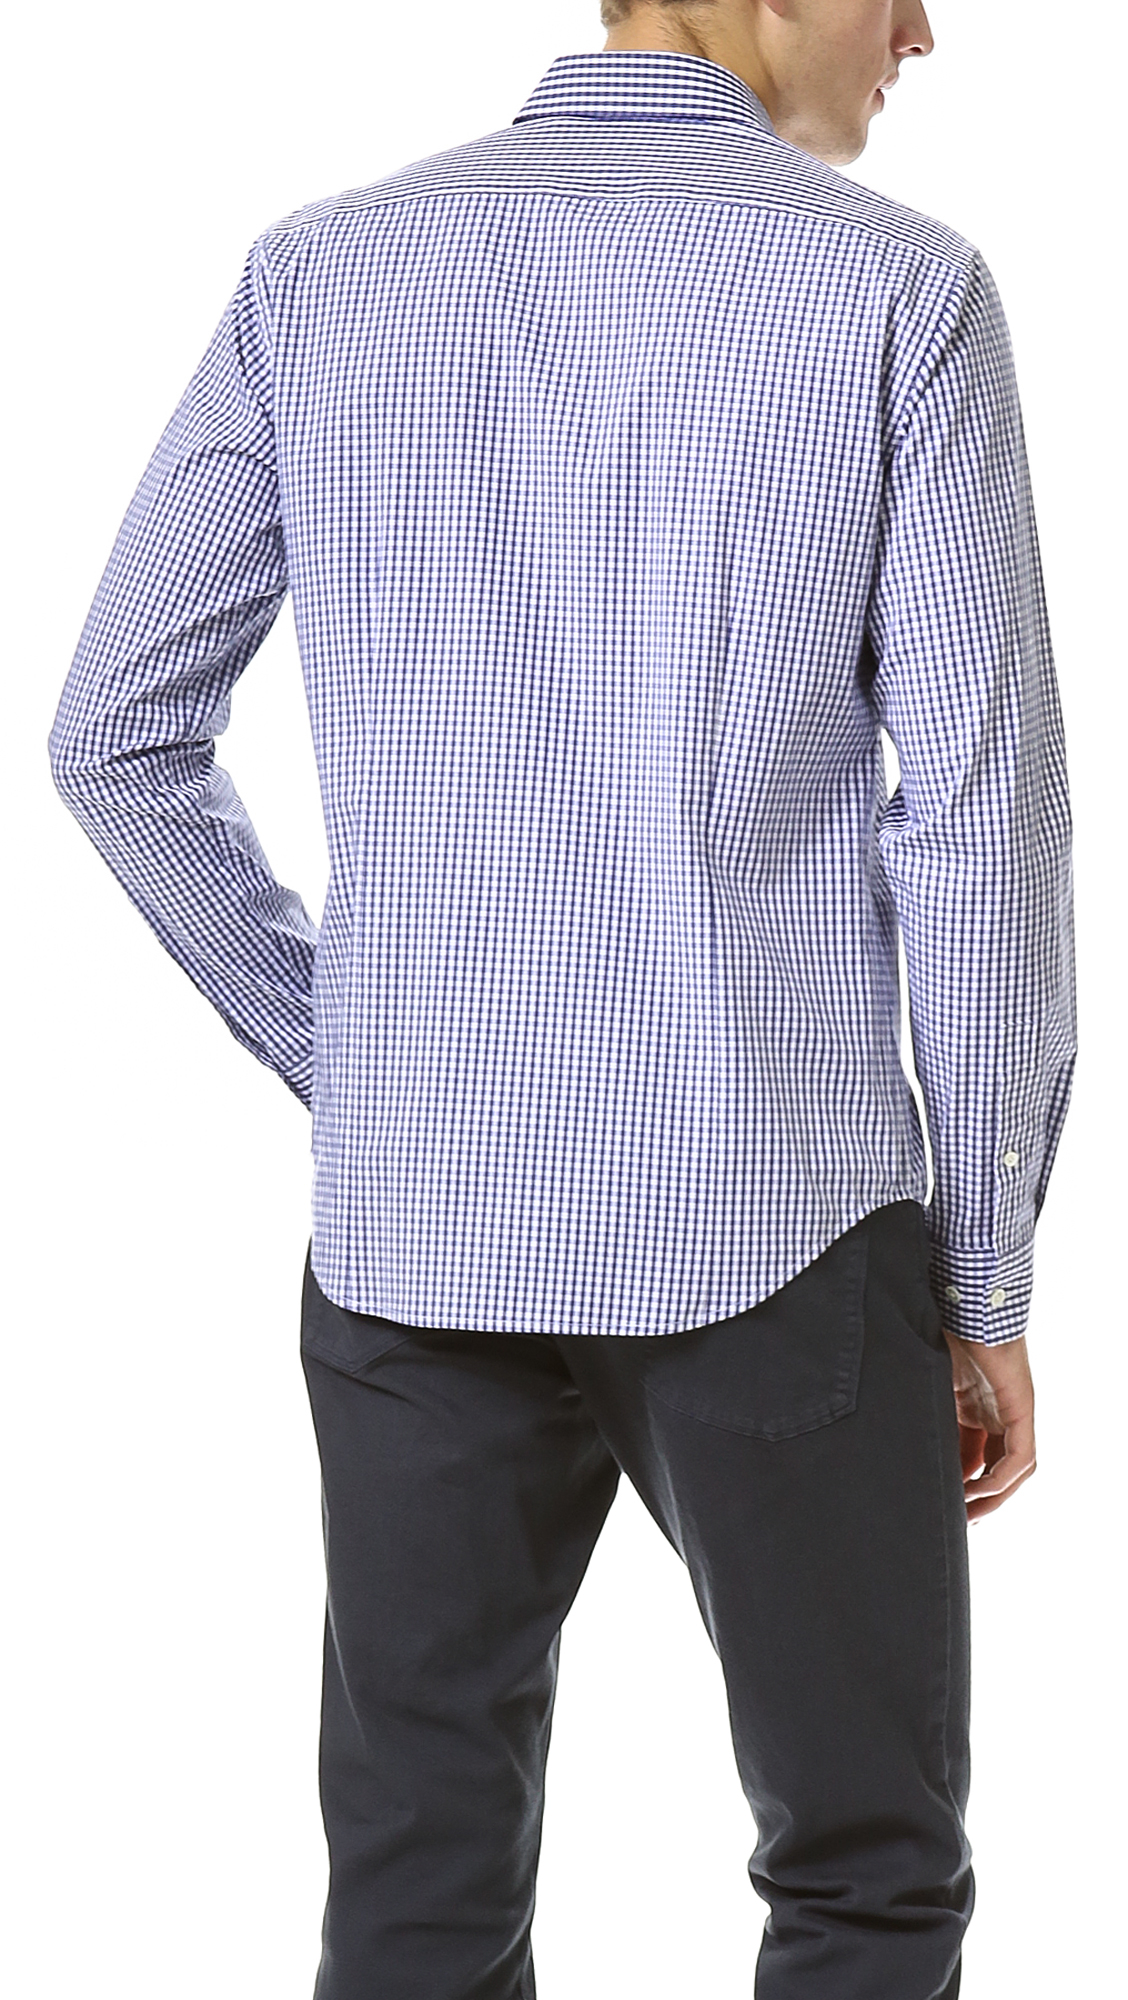 Theory sylvain gingham dress shirt in blue for men lyst for Mens gingham dress shirt